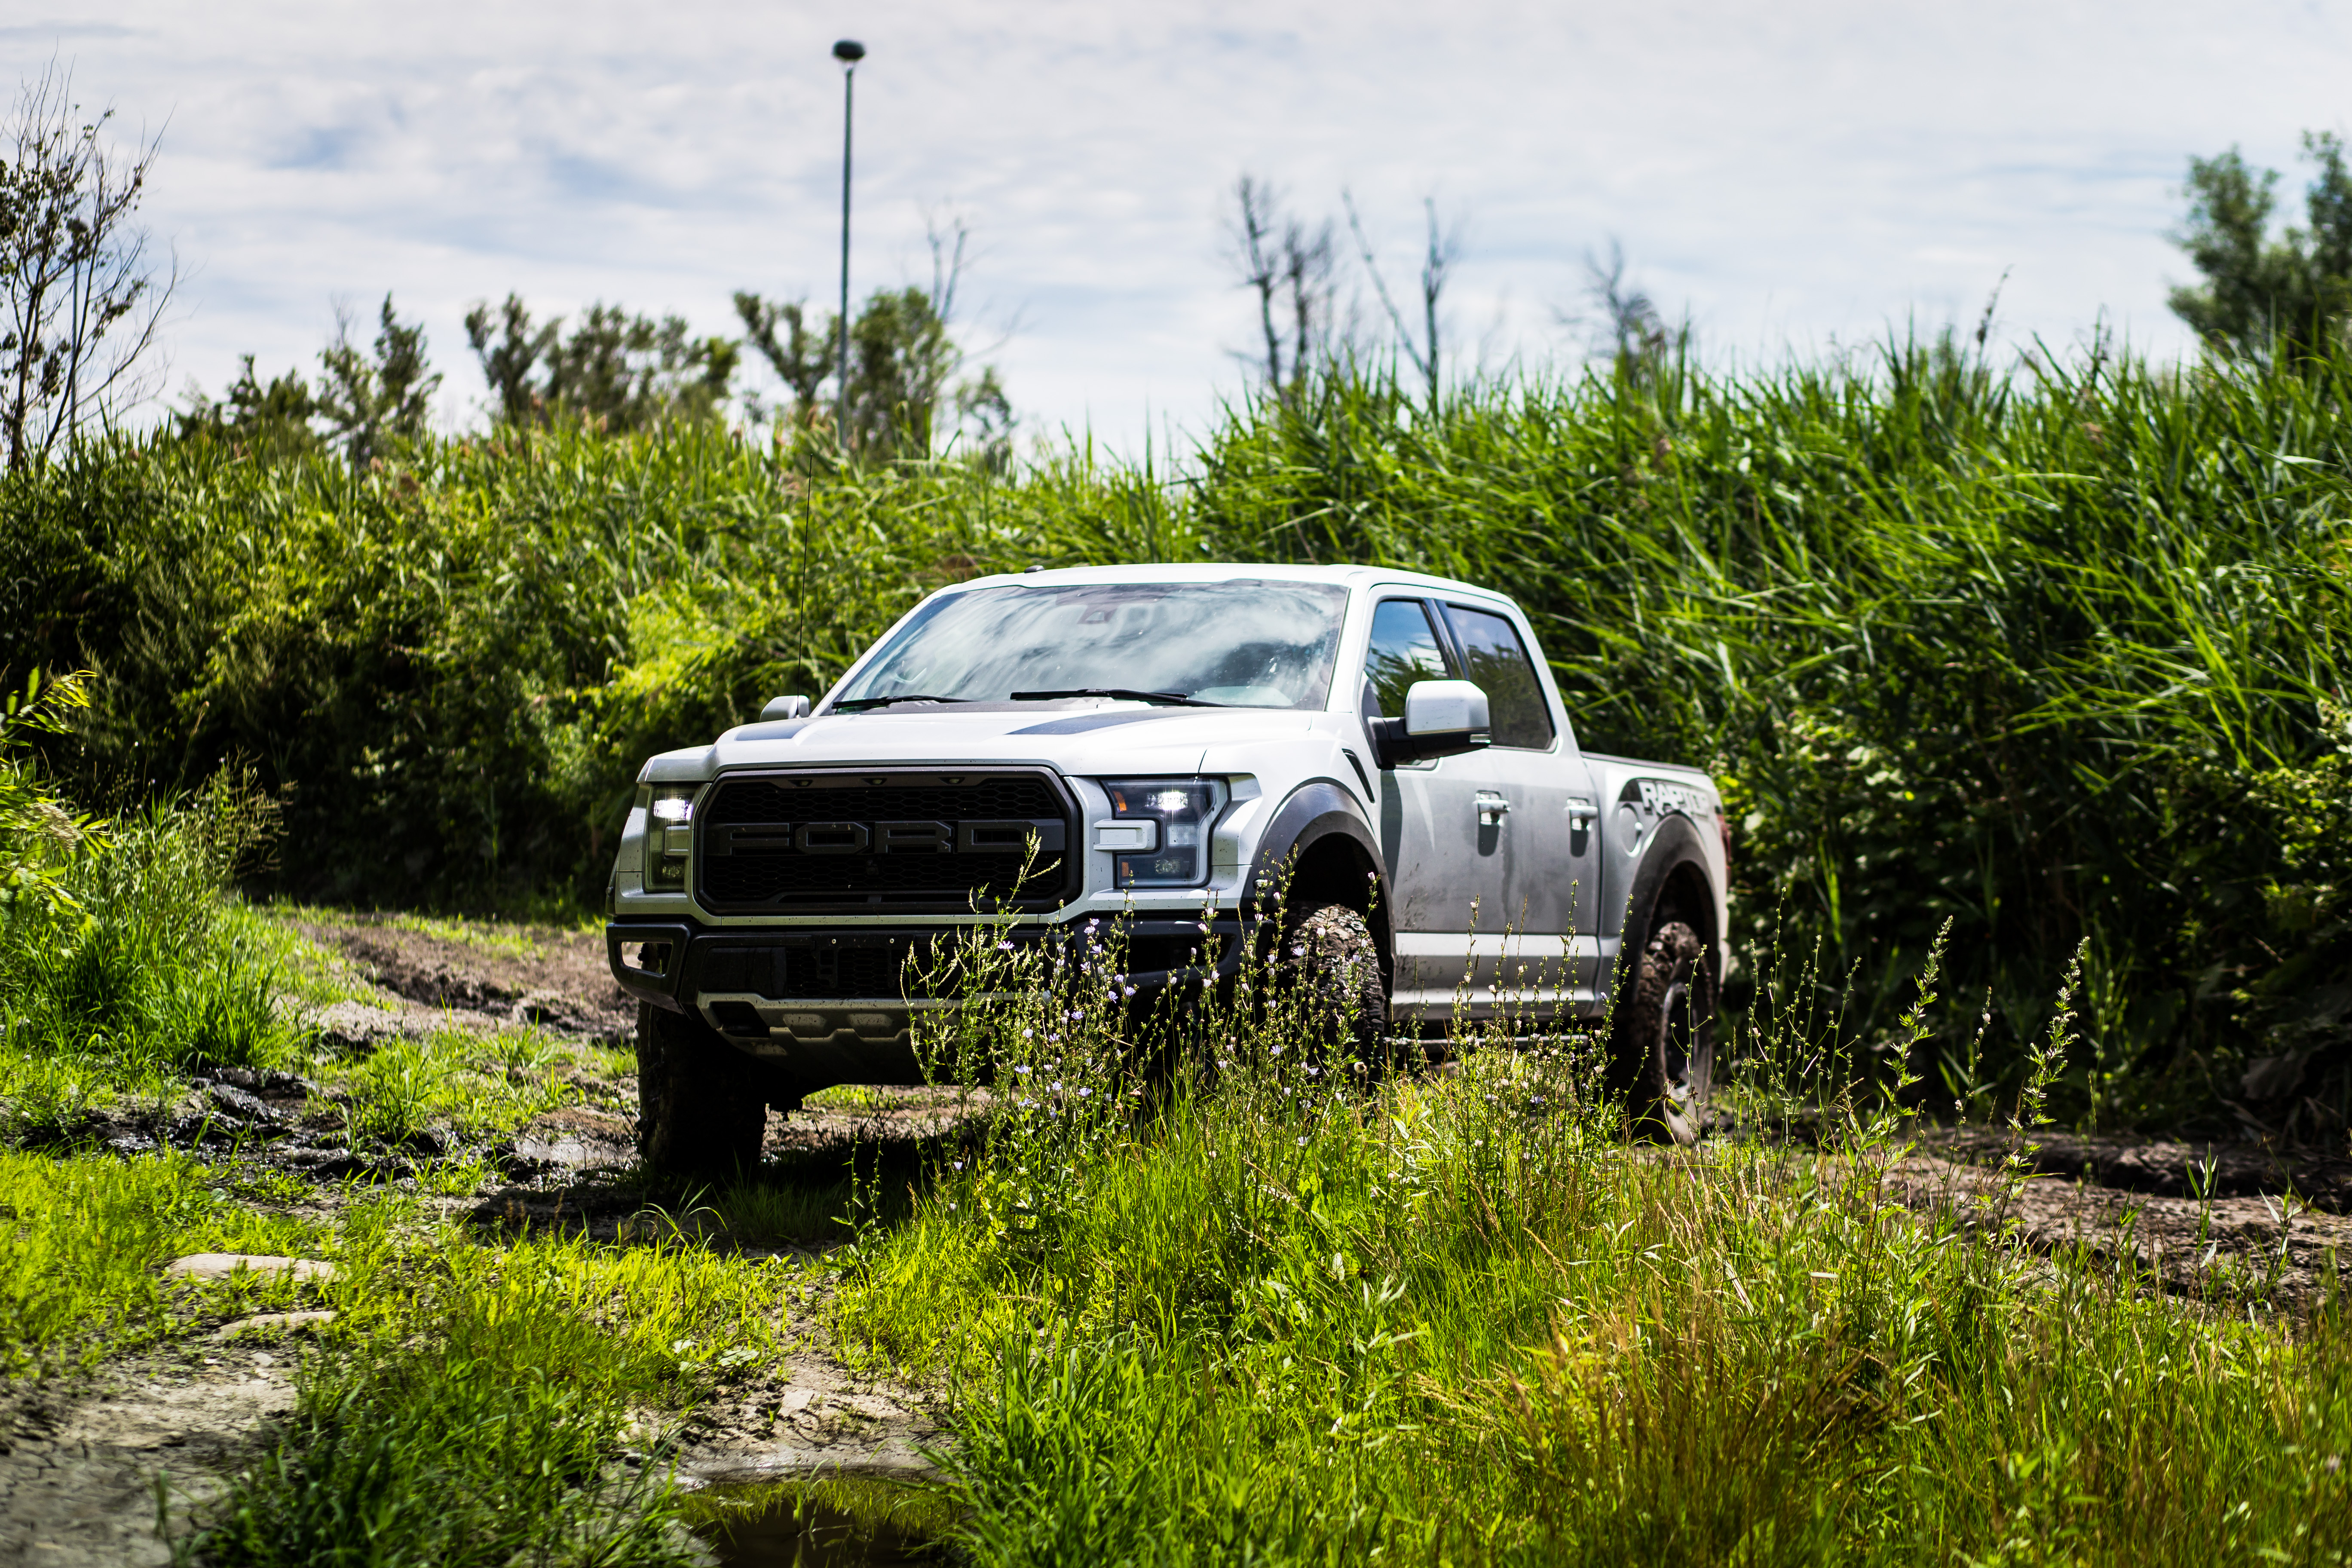 2017 Ford F-150 Raptor: The 911 GT3 RS Of Trucks